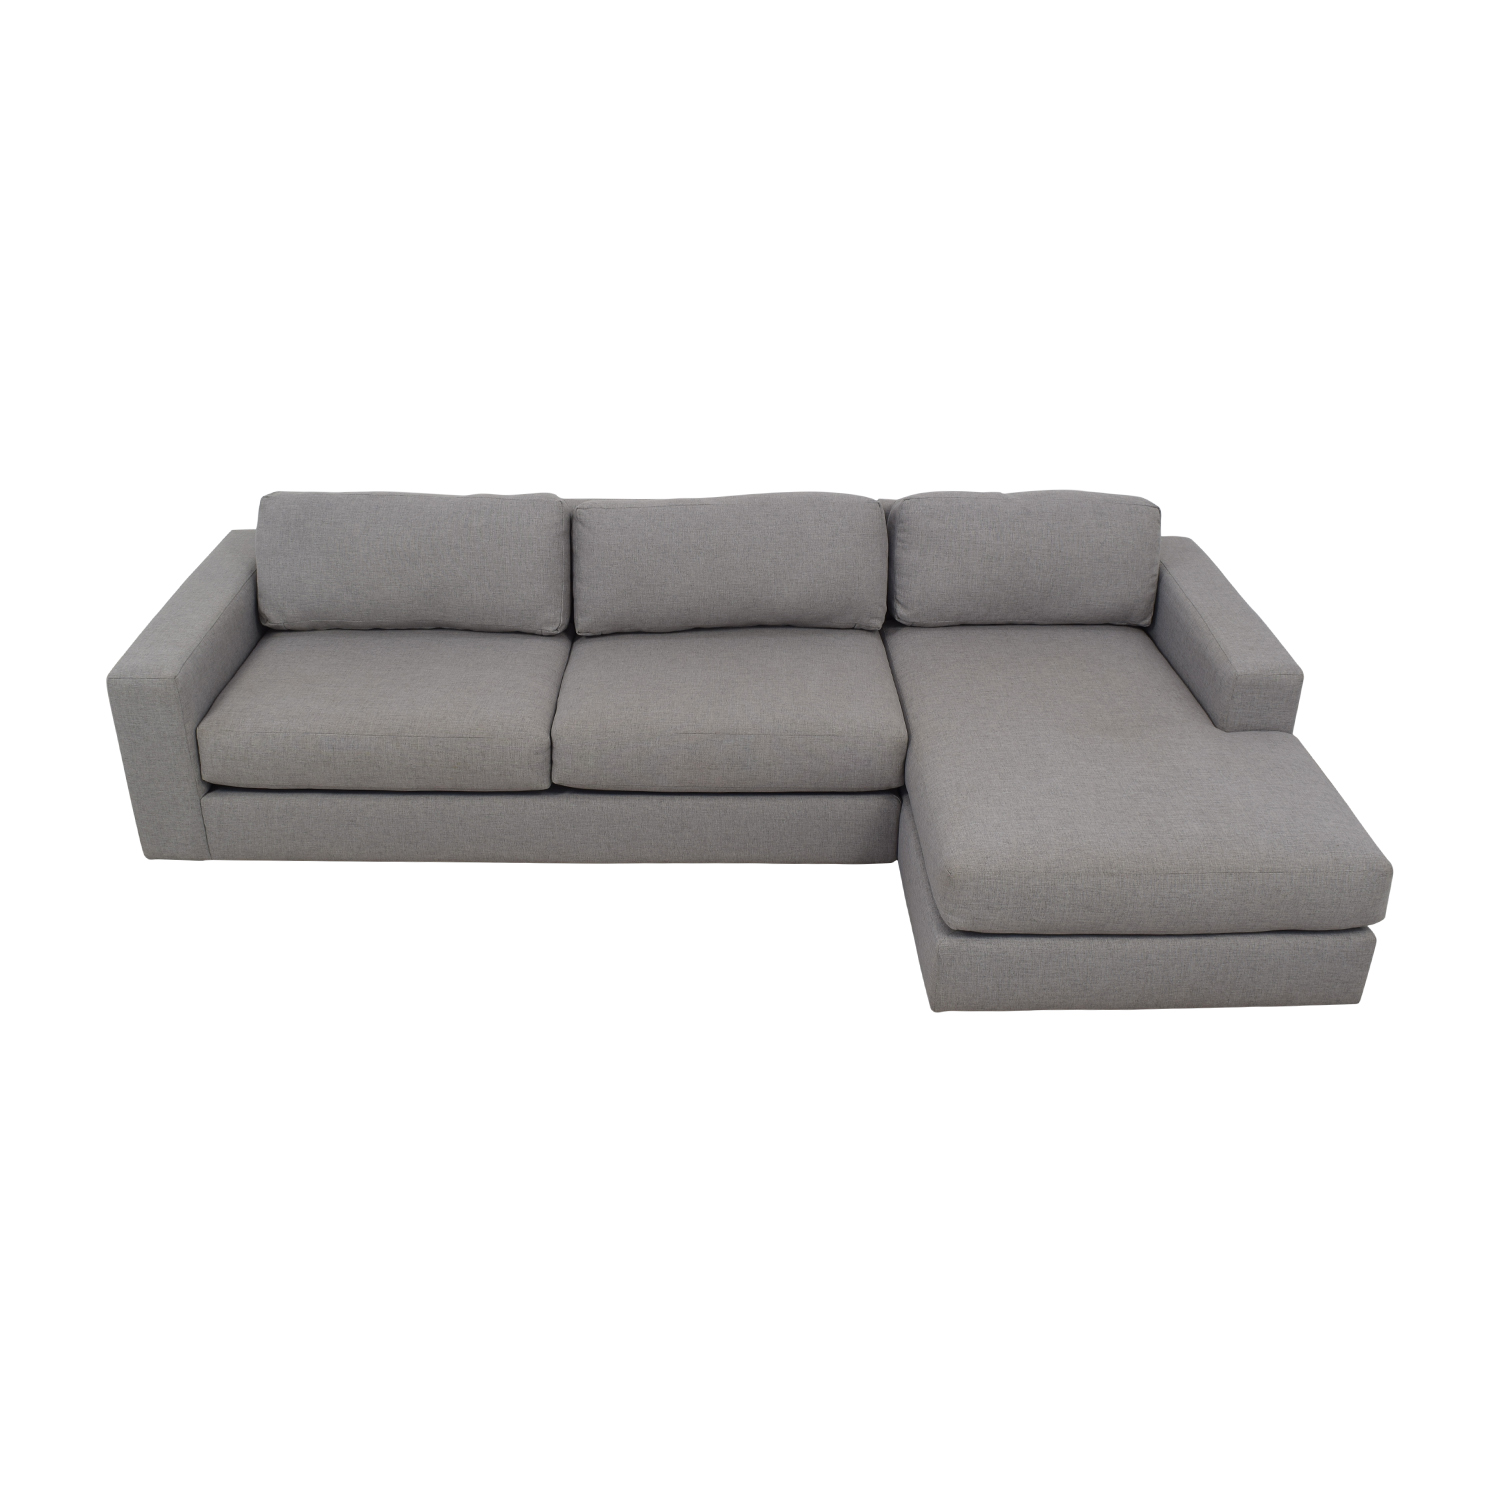 buy West Elm Urban Chaise Sectional Sofa West Elm